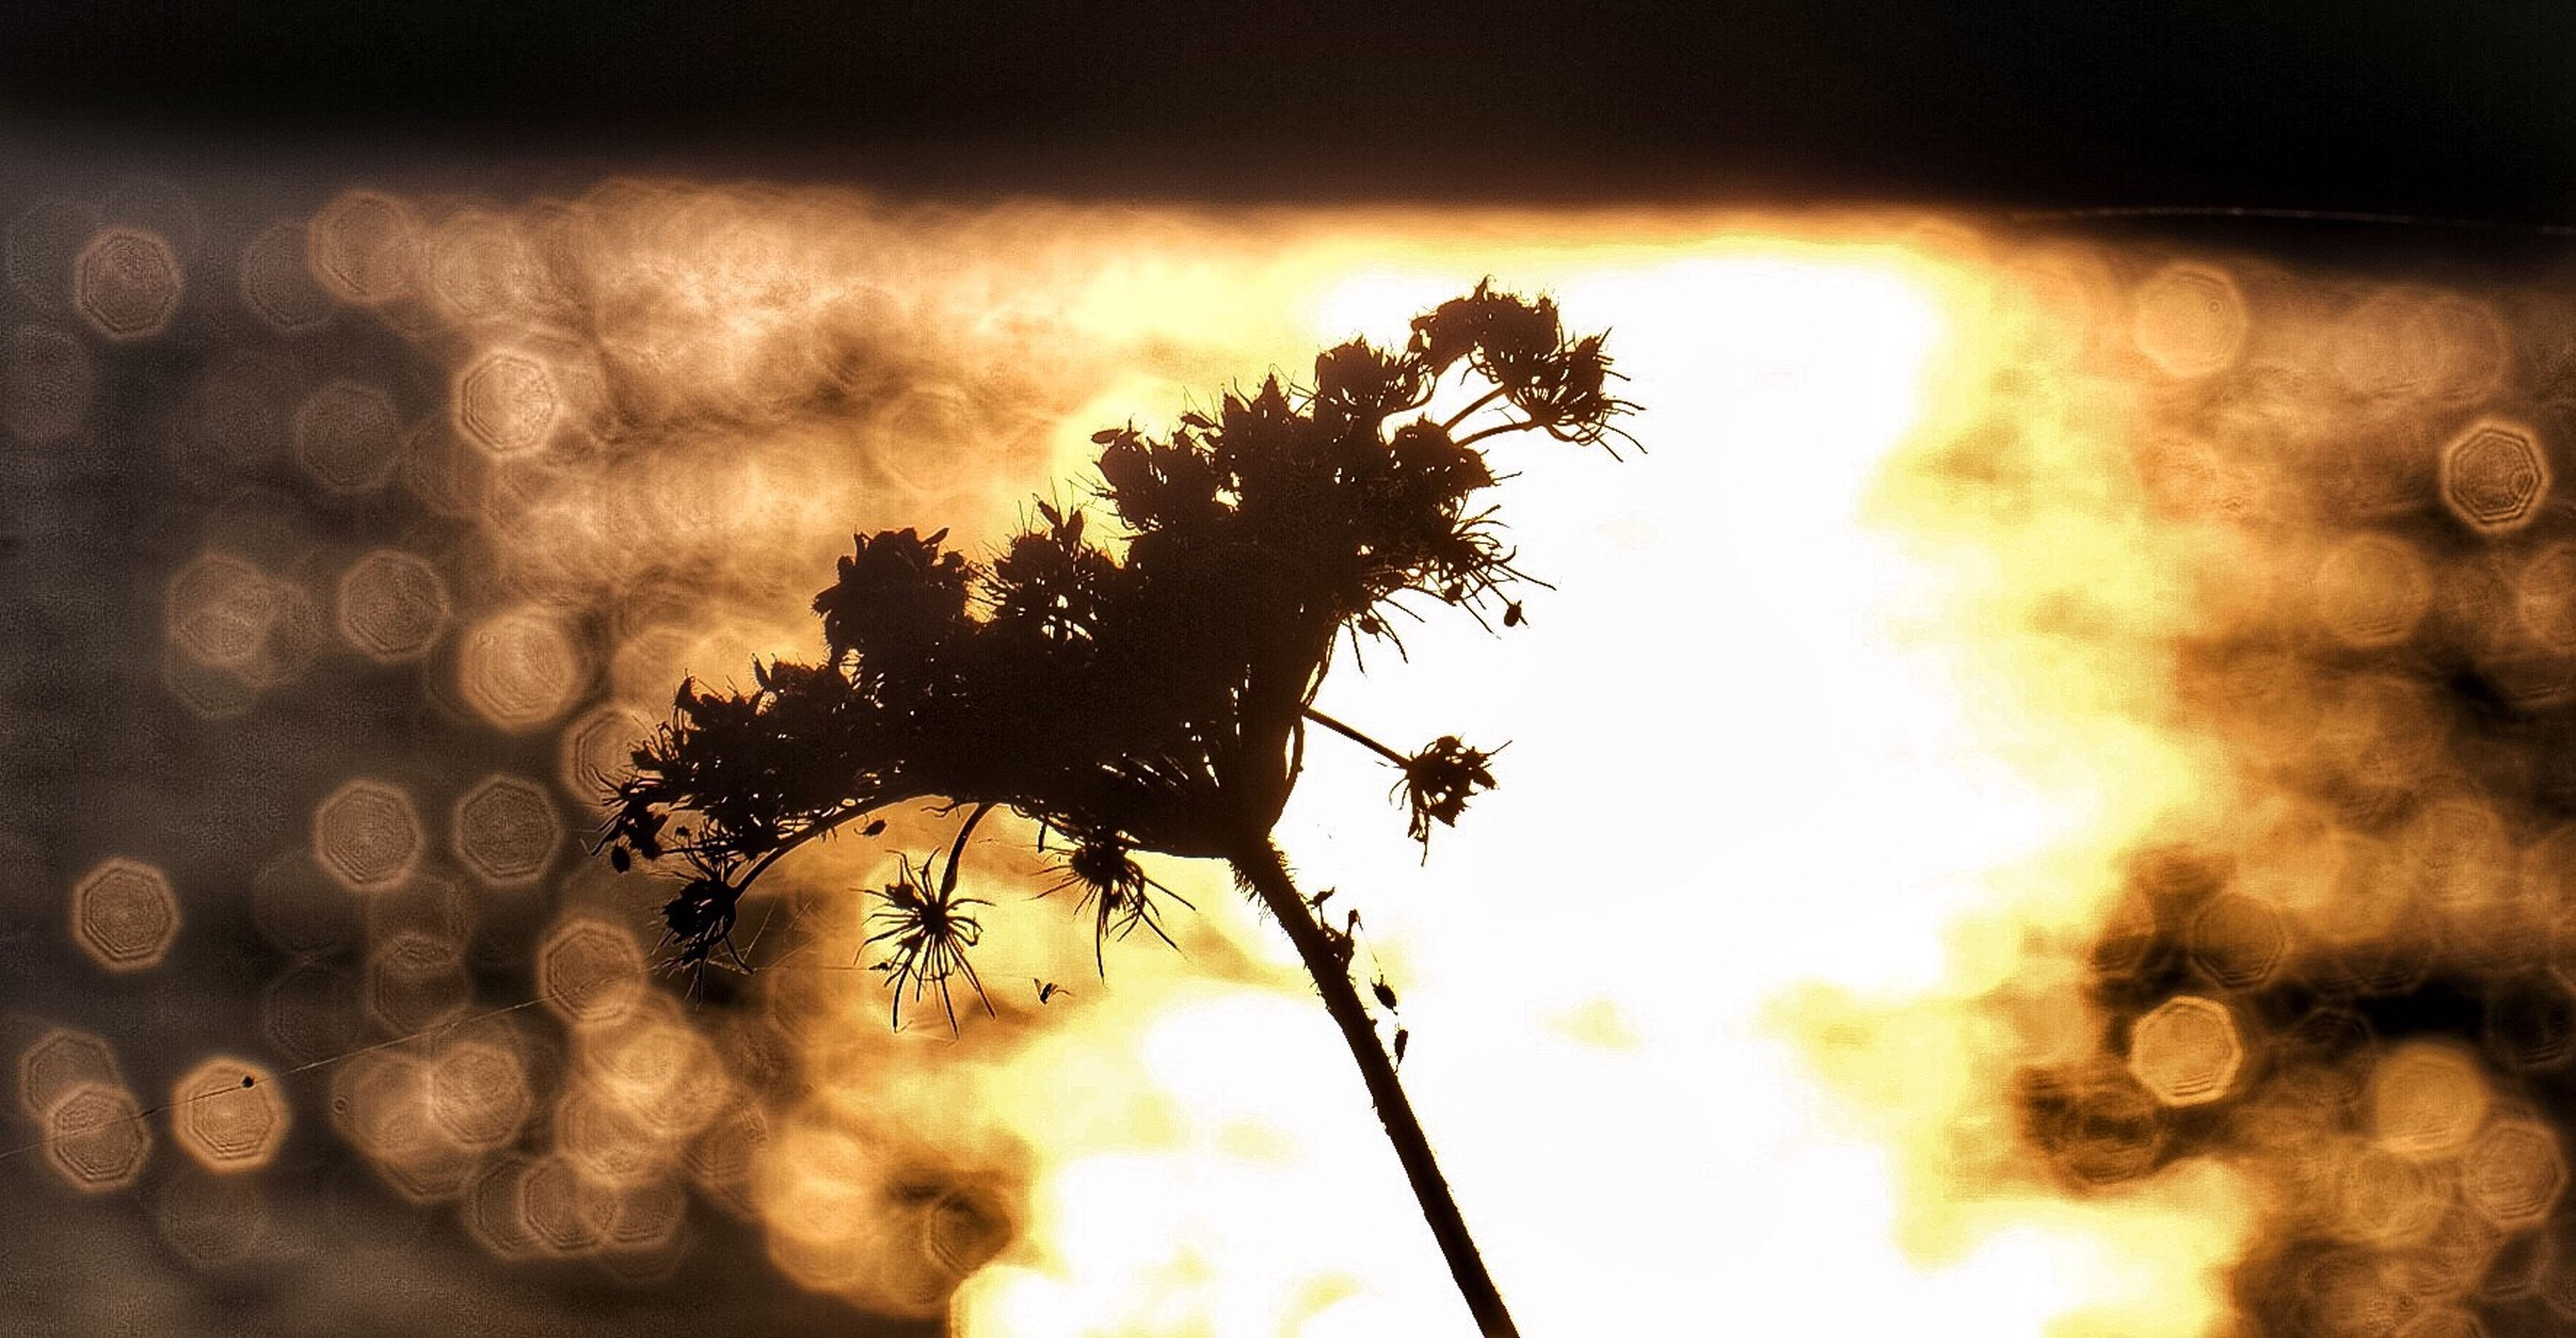 silhouette, sunset, tree, growth, close-up, focus on foreground, nature, beauty in nature, plant, back lit, sun, scenics, tranquility, outdoors, tranquil scene, sky, no people, atmospheric mood, majestic, uncultivated